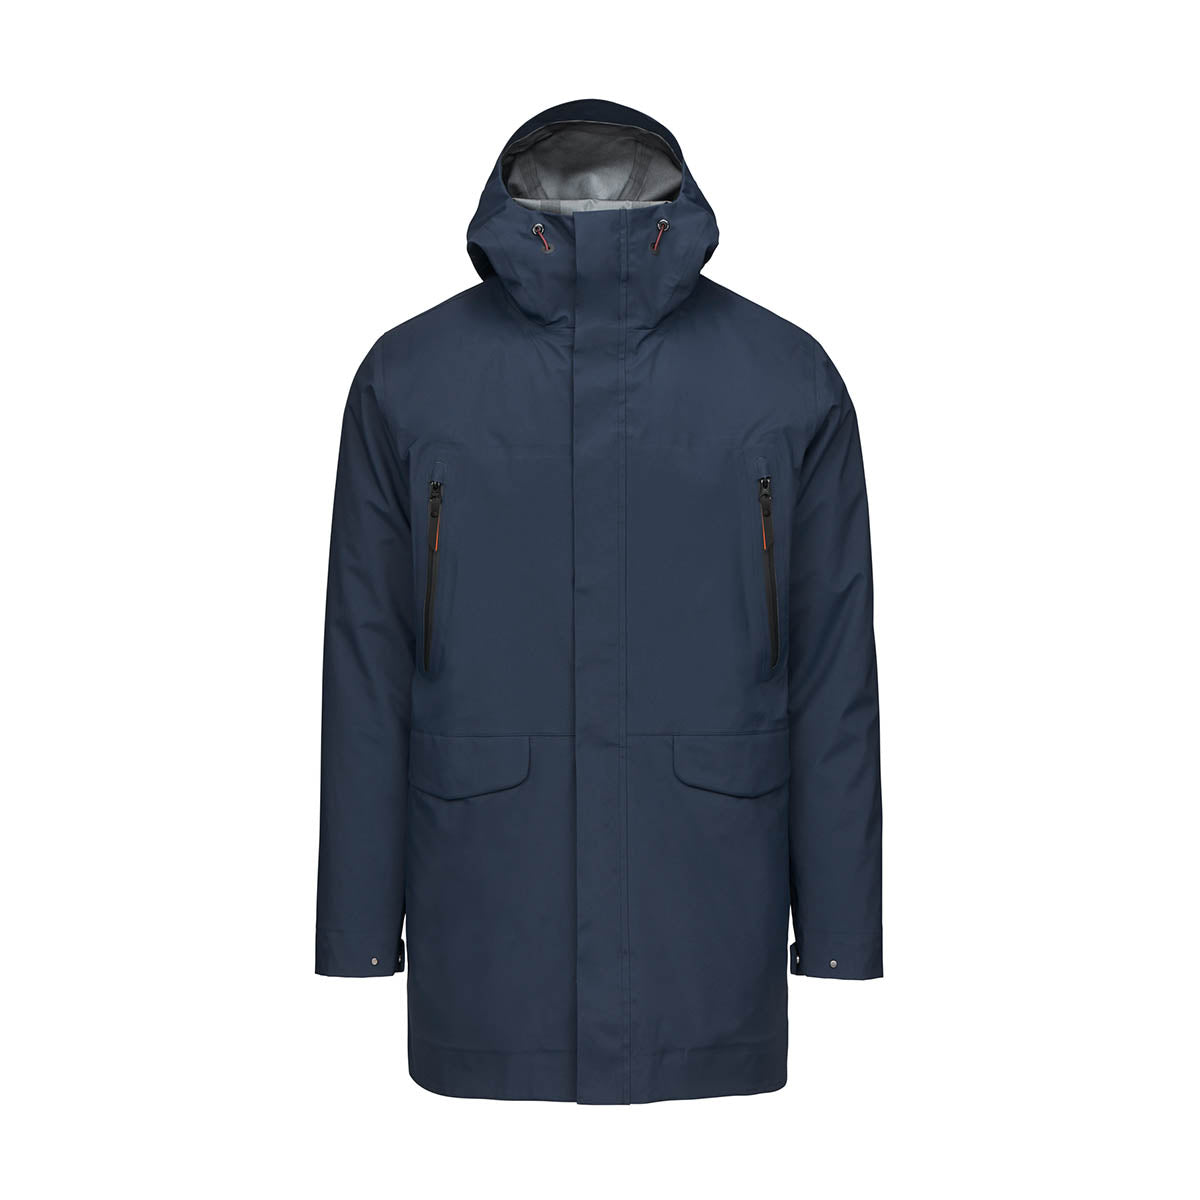 Zürich II Parka - background::white,variant::Dark Navy